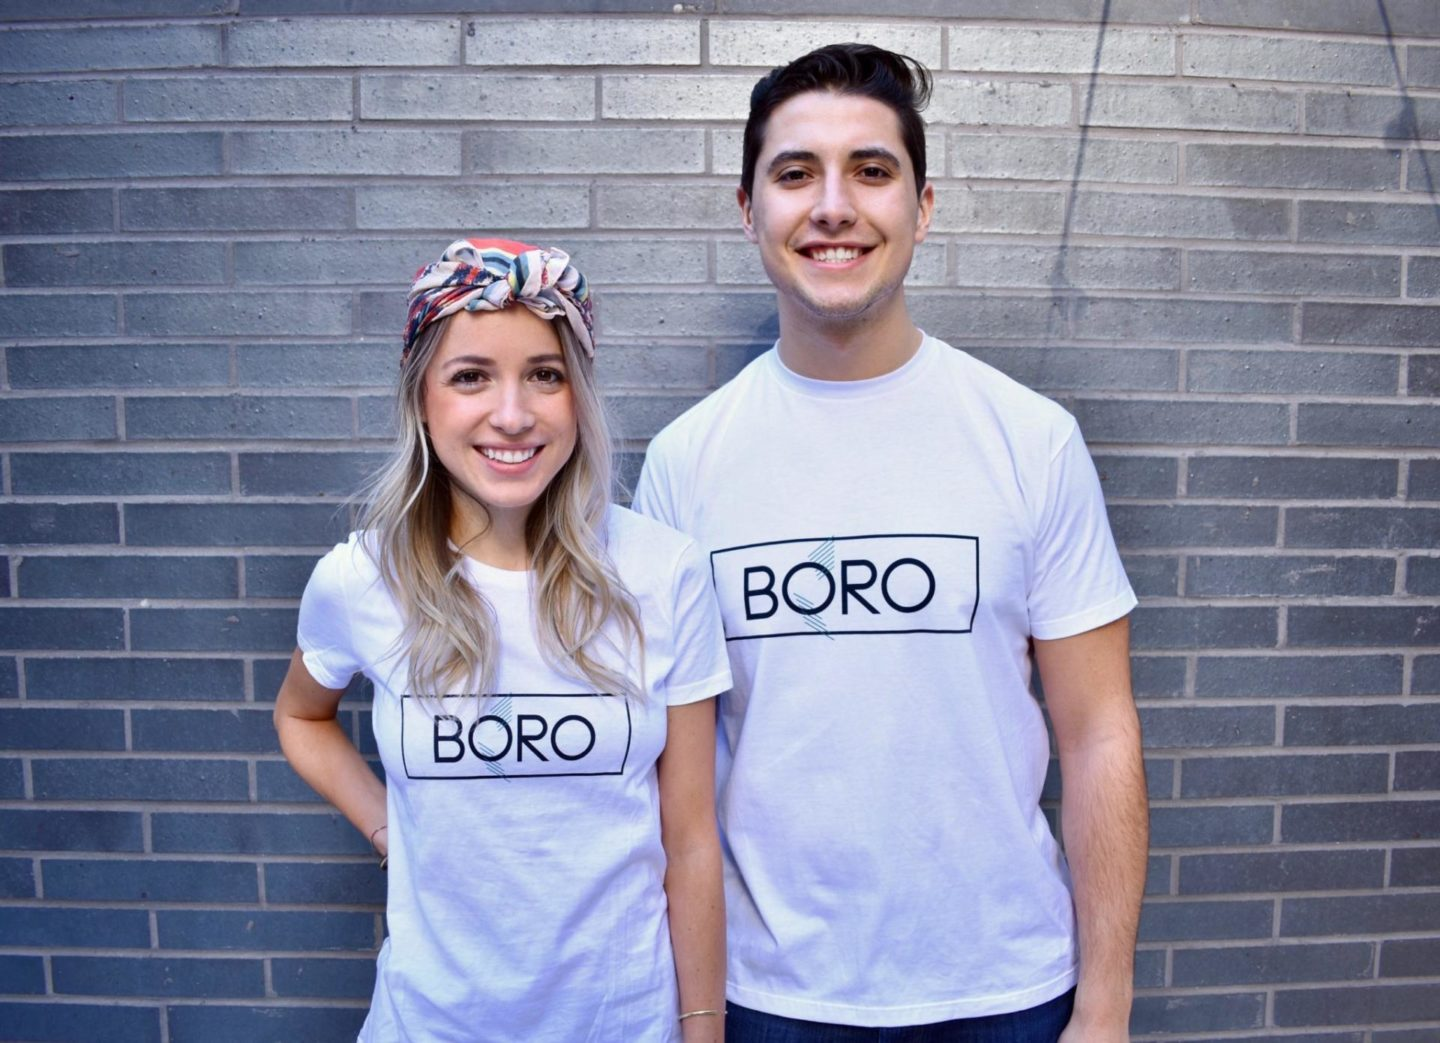 Boro Clothing & Co-founders Natalie & Chris !